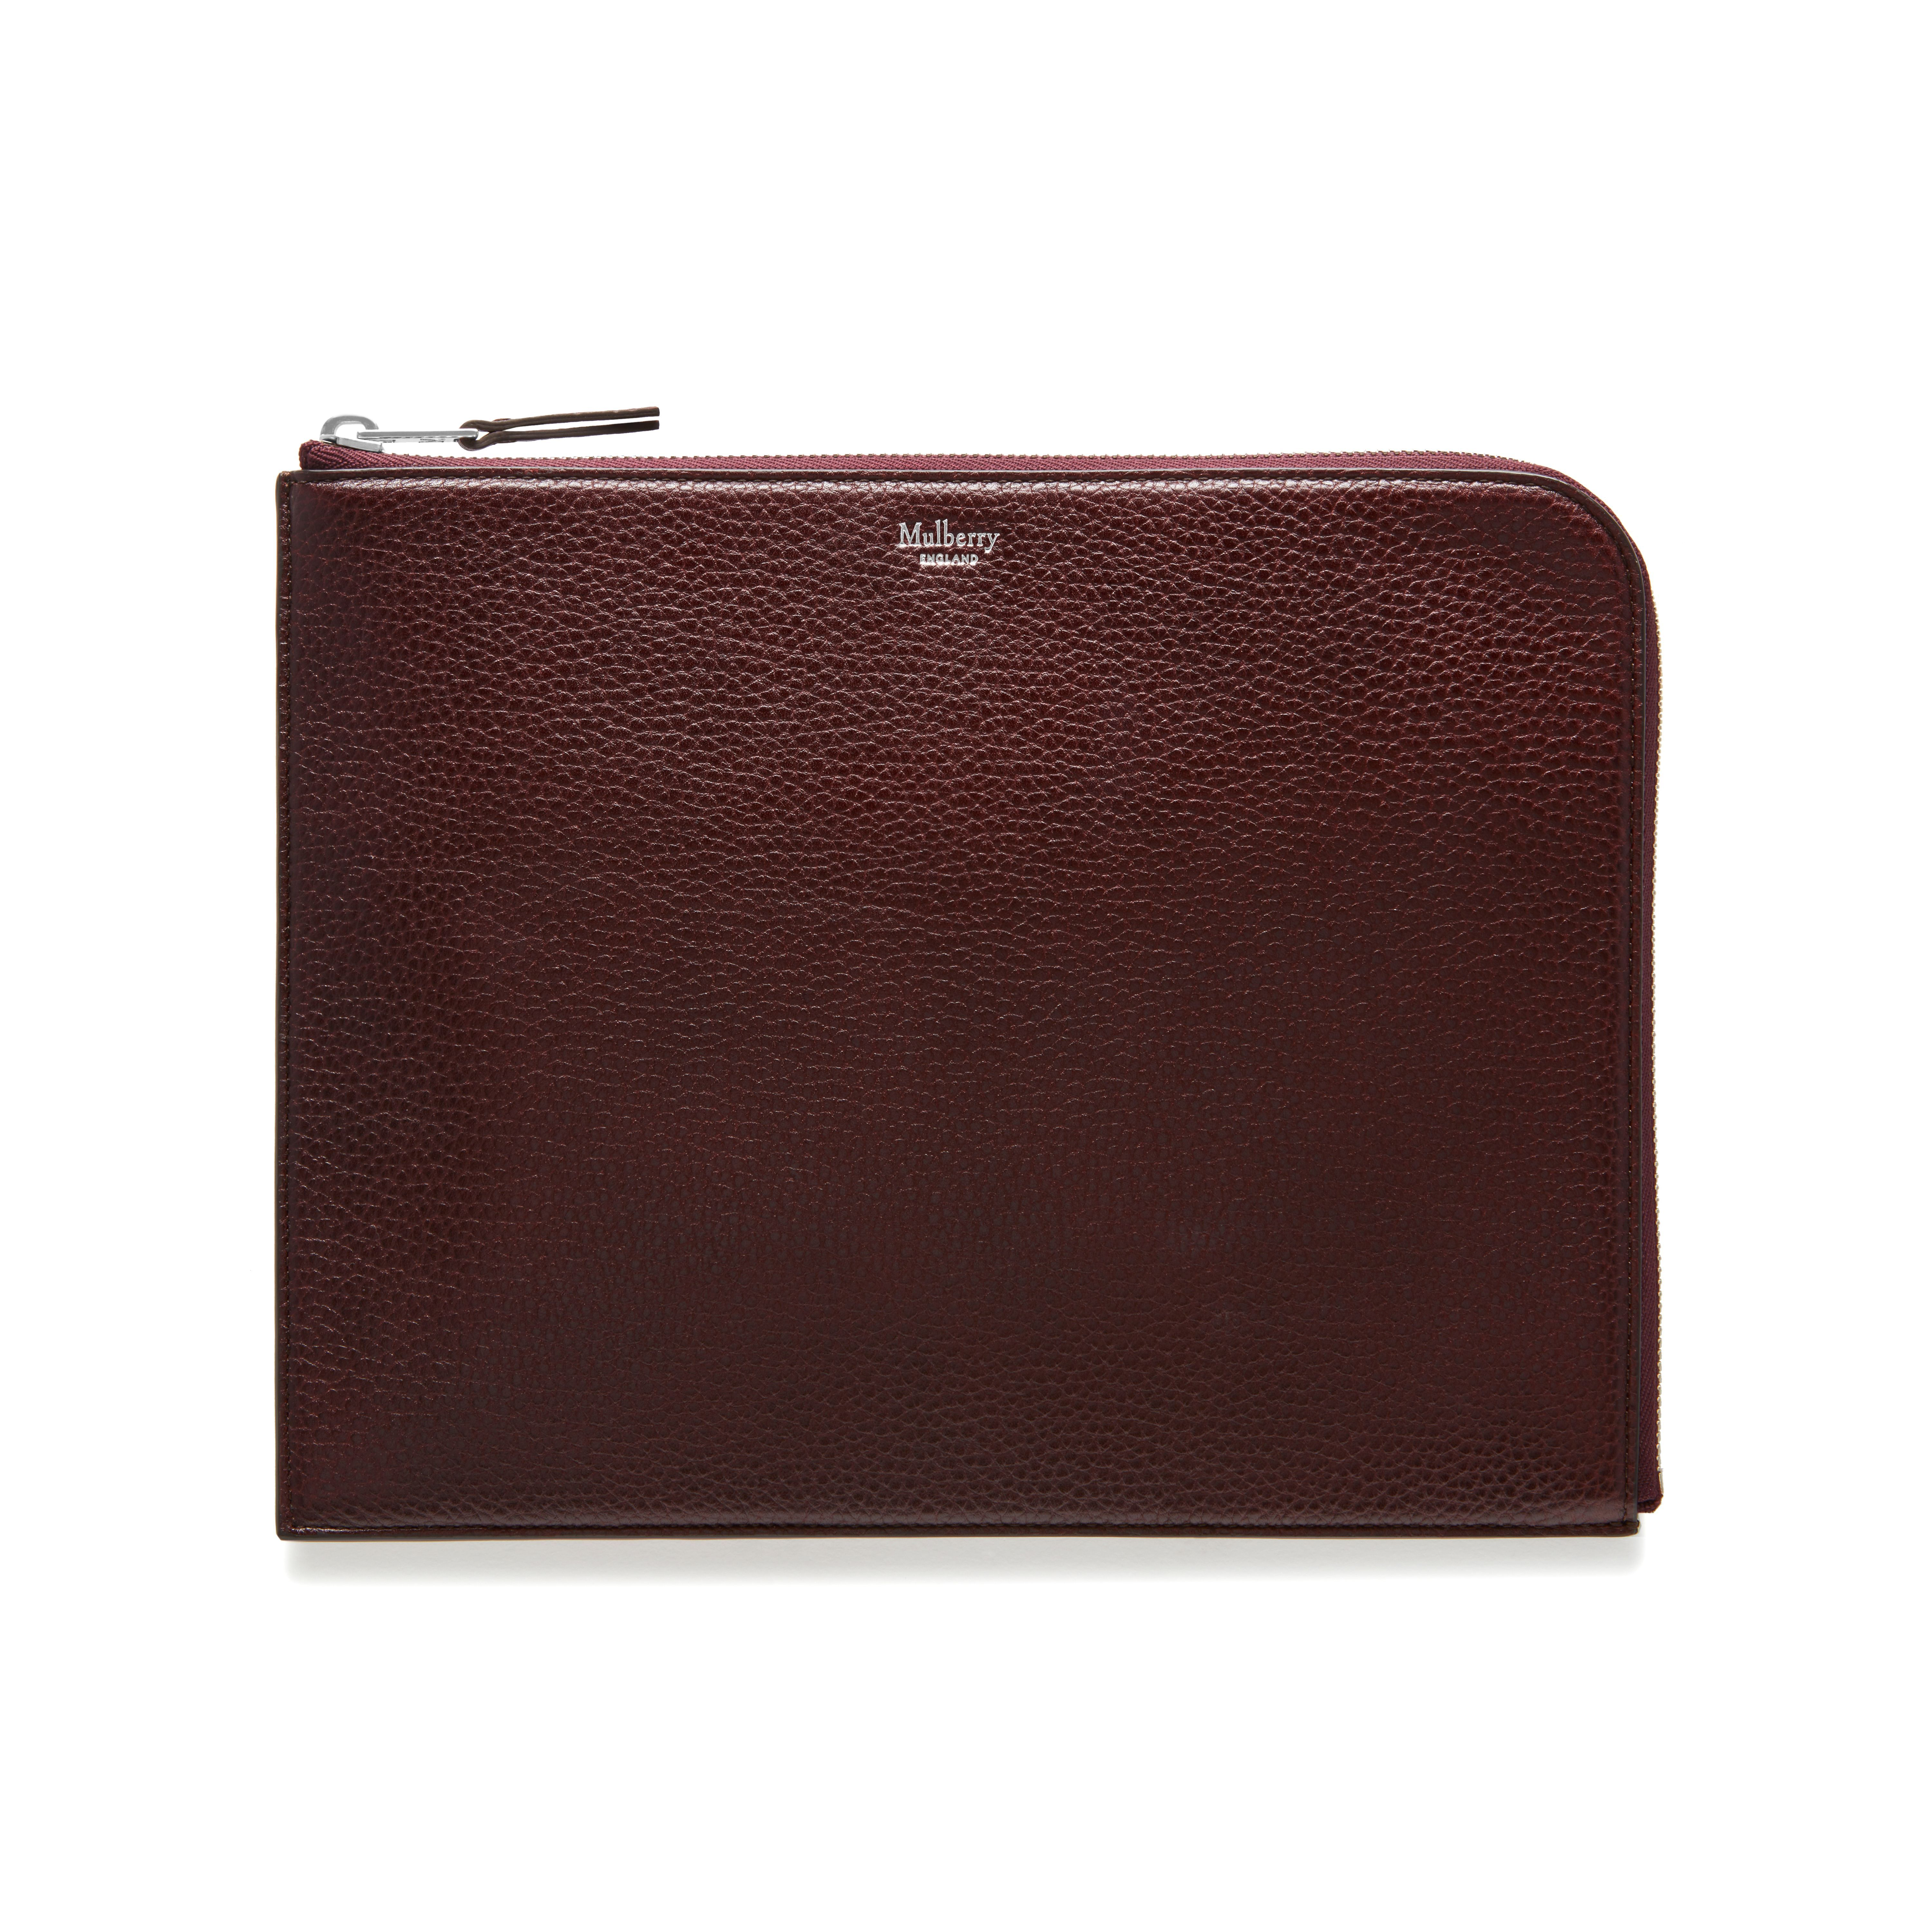 b00aef798eb5 Shop the Tech Pouch in Oxblood Natural Grain Leather at Mulberry.com. Stay  organised with this practical zipped Tech Pouch